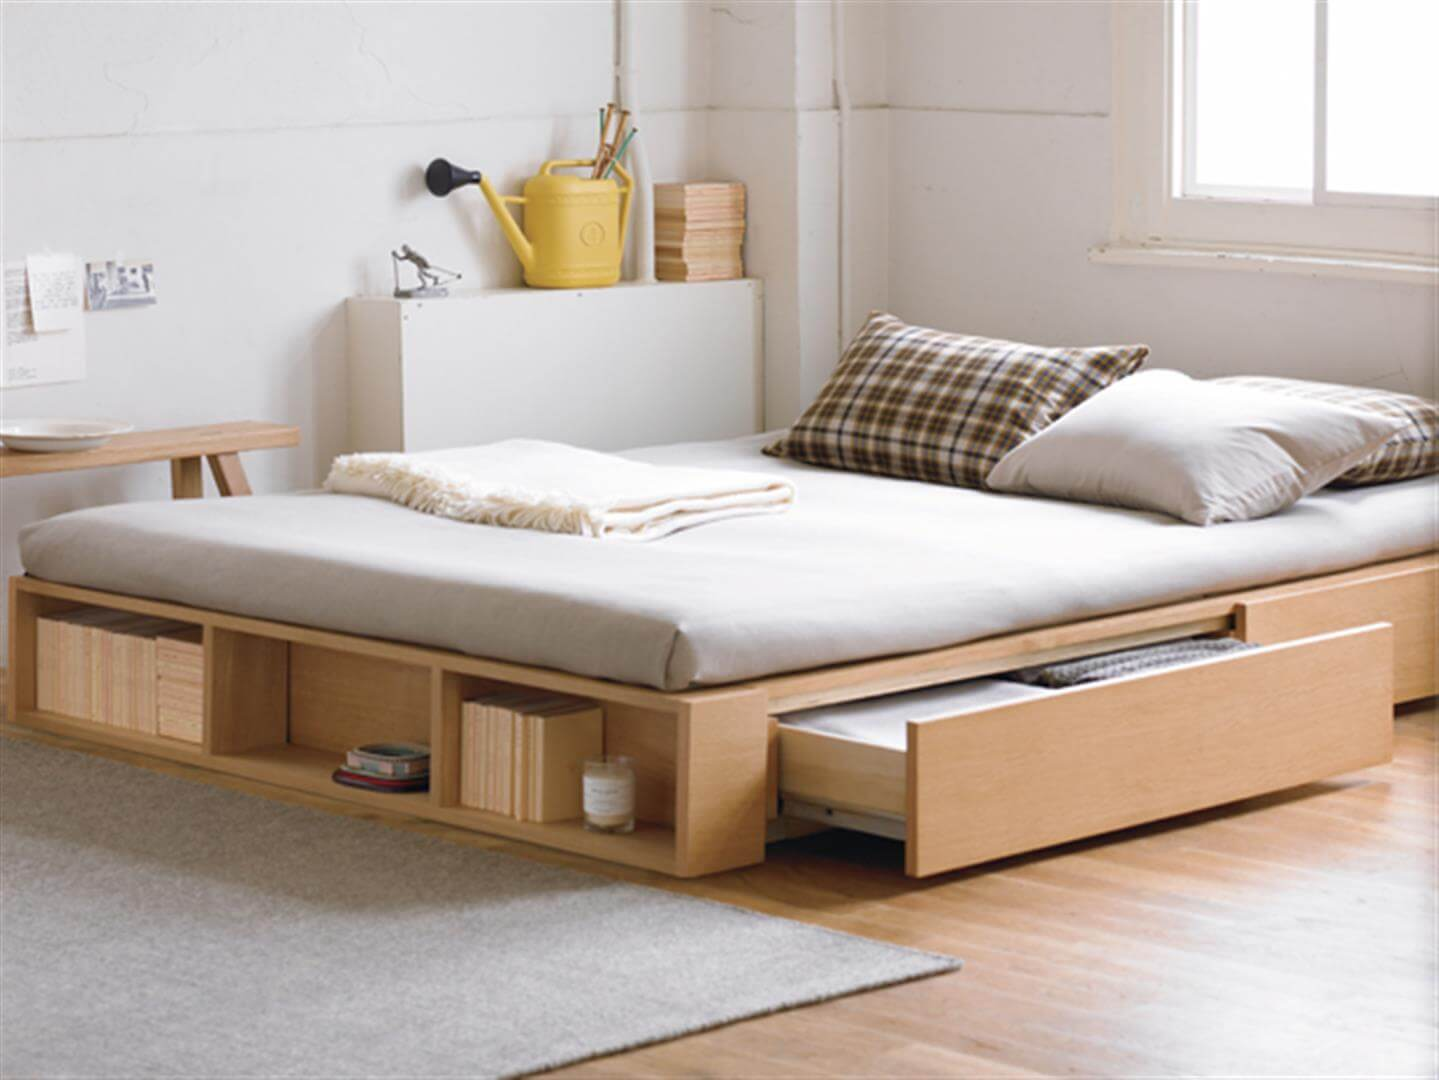 Remarkable Muji Storage Bed Creativecarmelina Interior Chair Design Creativecarmelinacom